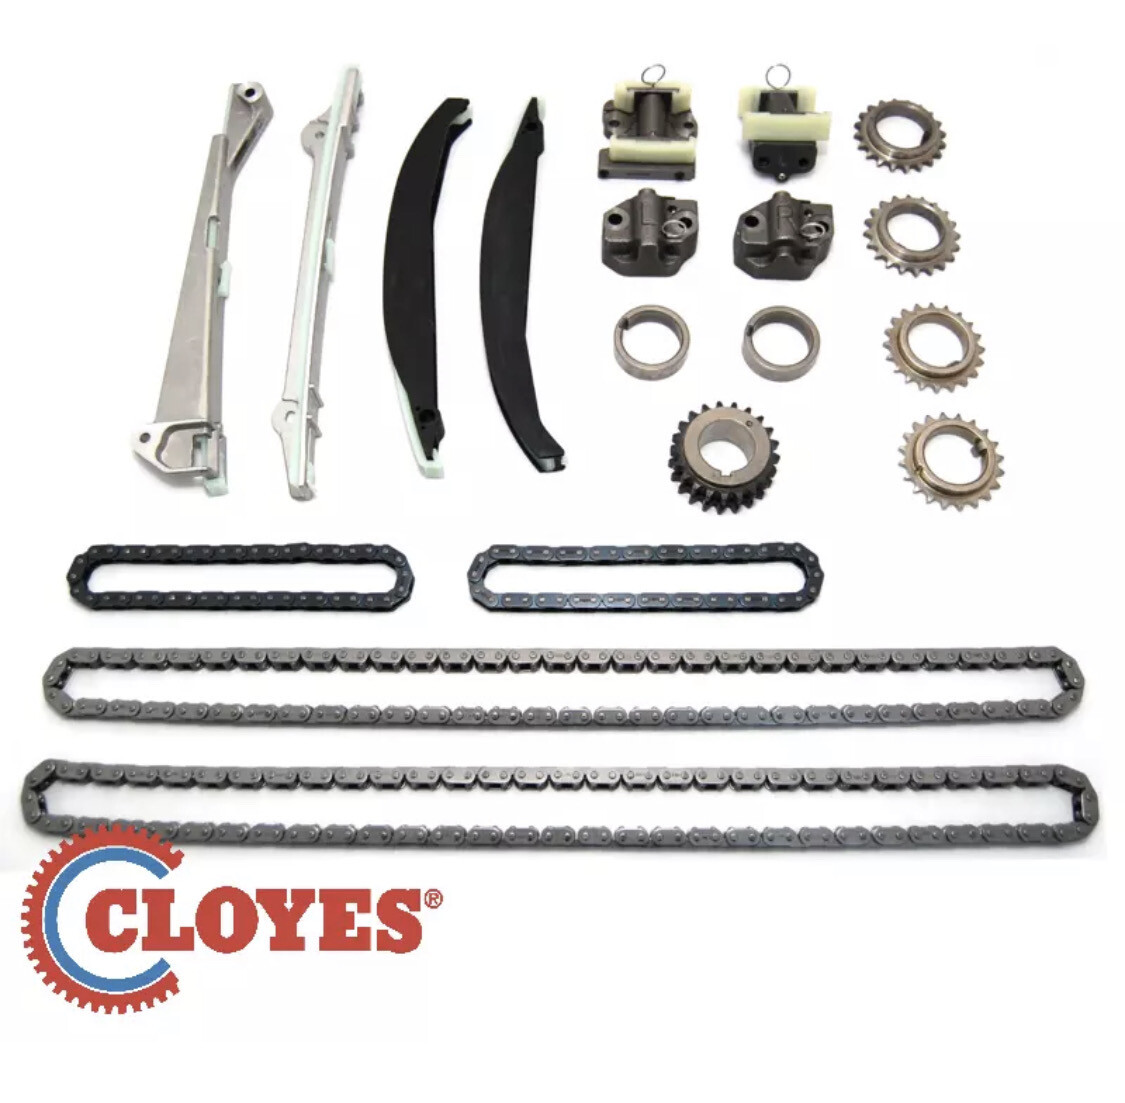 CLOYES TIMING CHAIN KIT WITH GEARS  FORD FALCON BA BF FG BOSS 260 290 5.4L V8